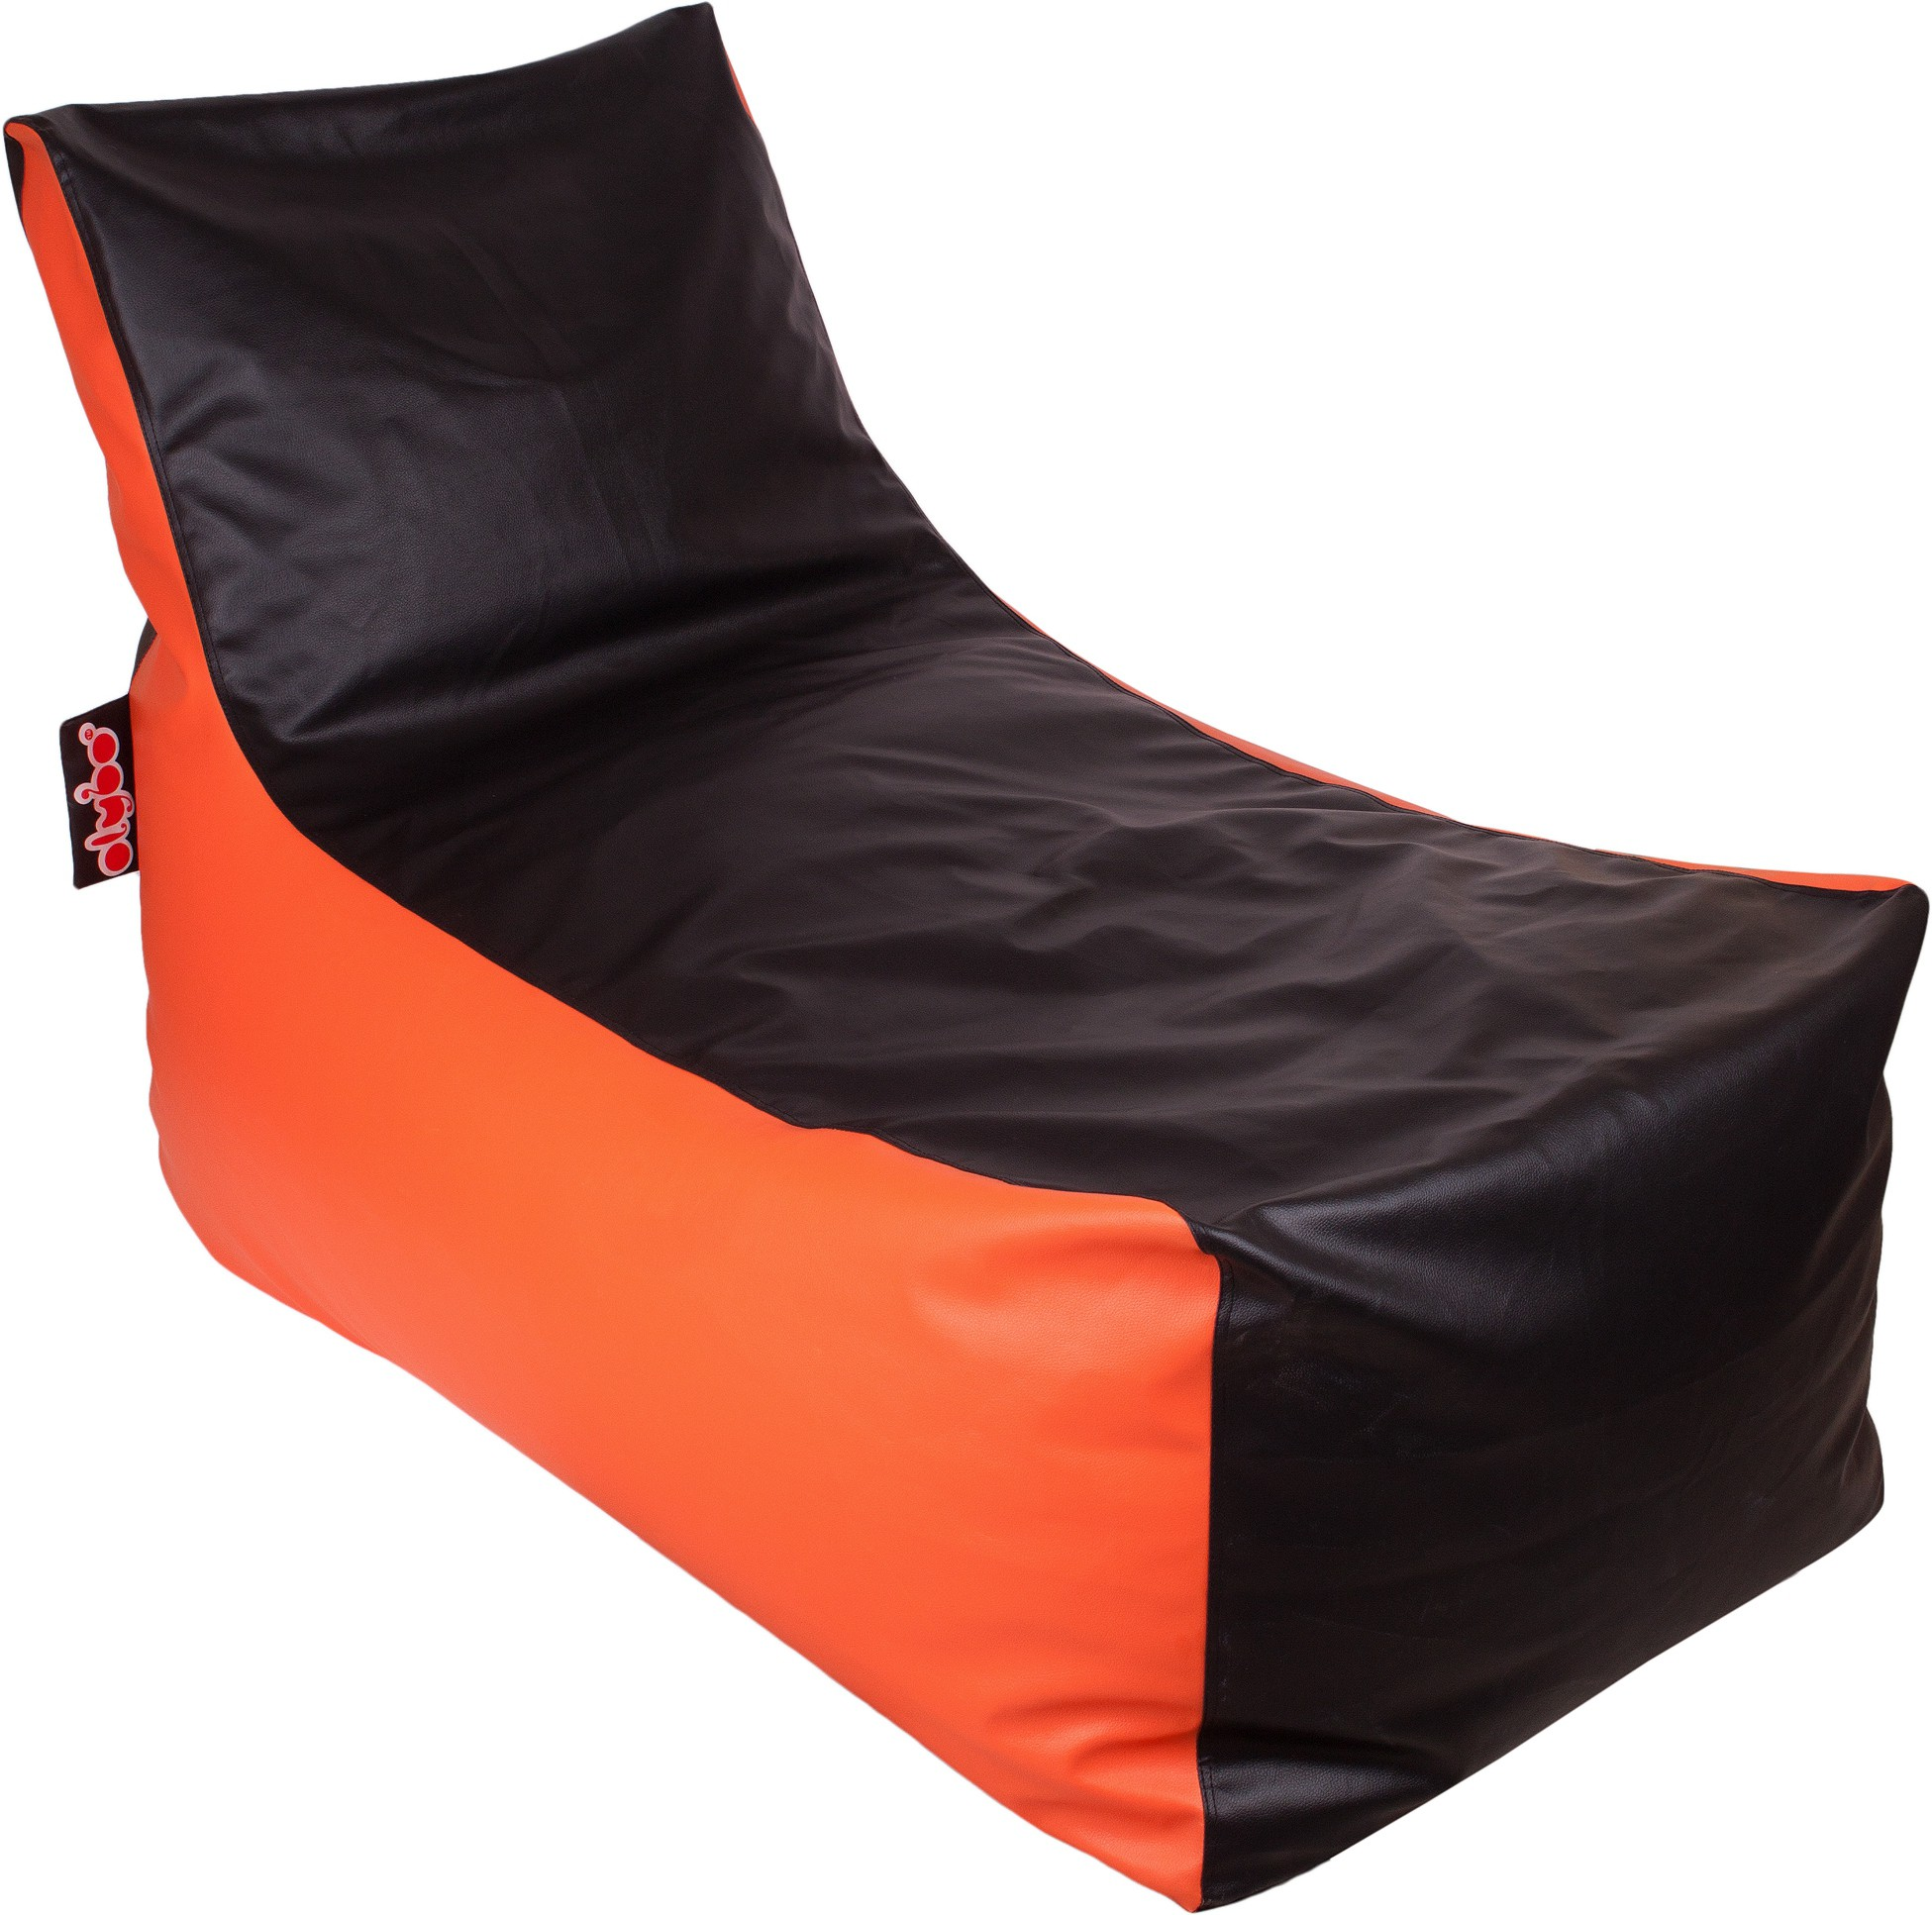 View Olybo XXL Lounger Bean Bag Cover(Orange, Black) Furniture (Olybo)